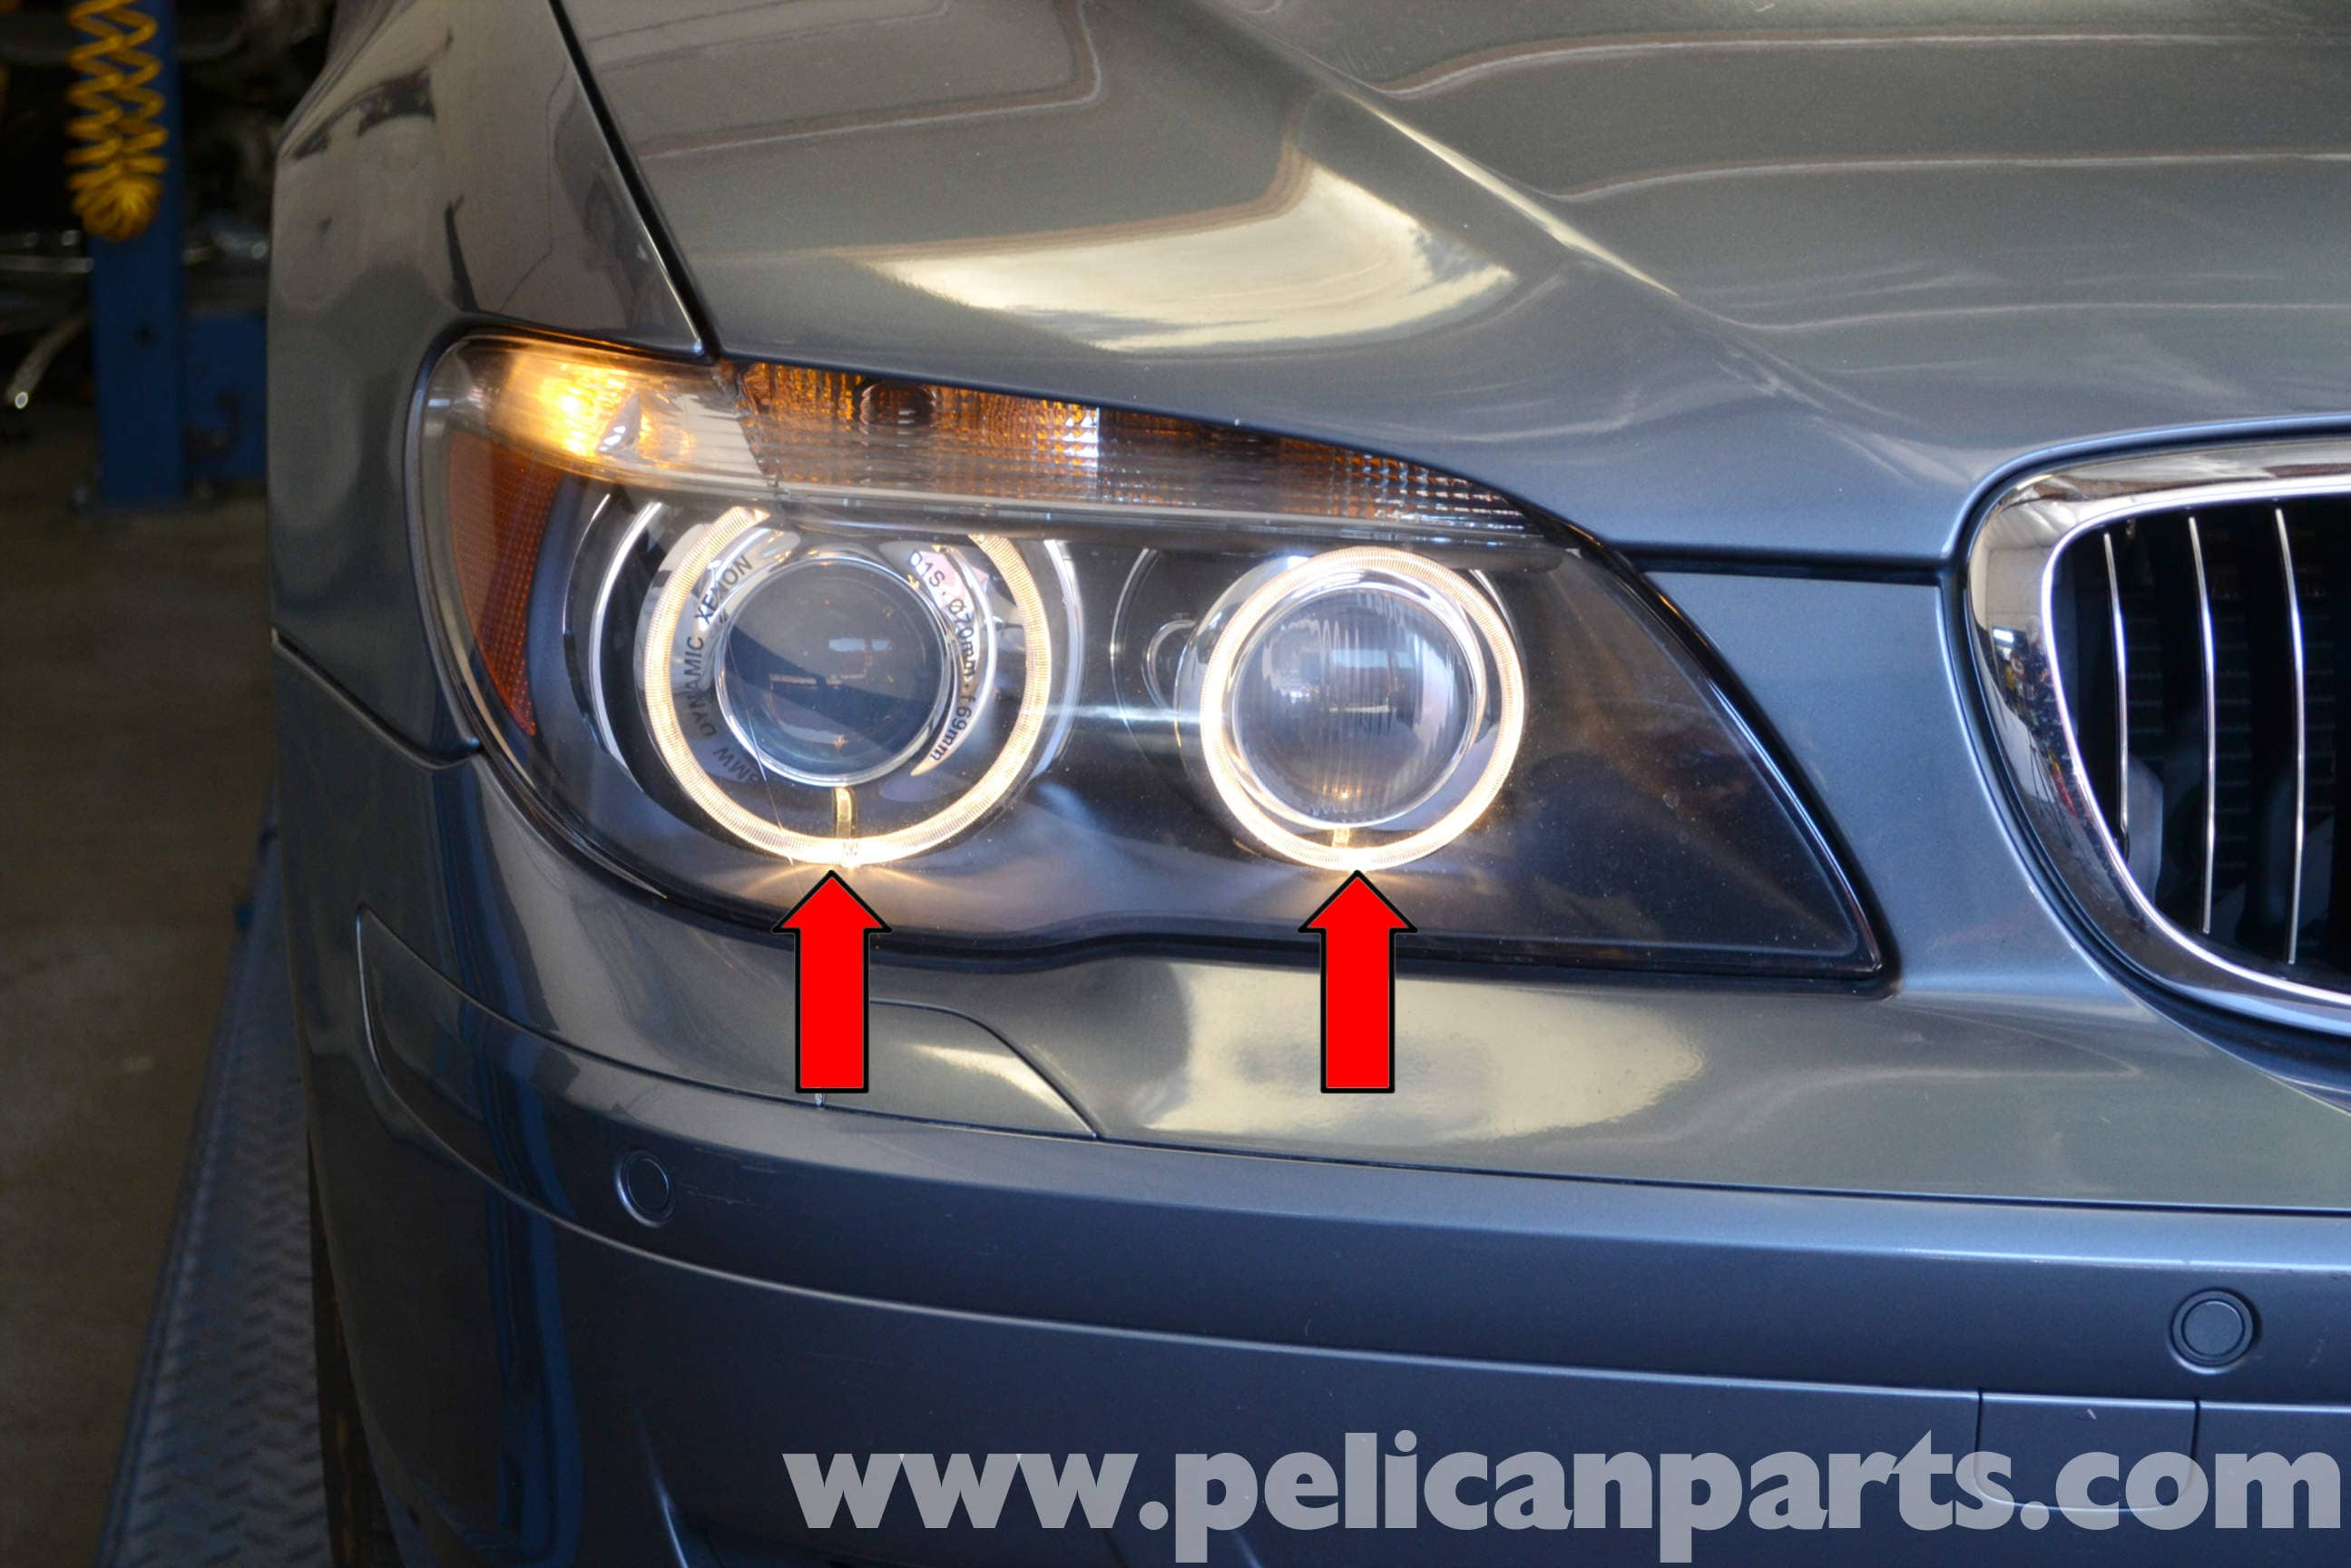 Bmw e66 headlight wiring diagram diy wiring diagrams bmw e65 7 series angel eyes headlight assembly replacement 2002 rh pelicanparts com bmw r65 wiring diagram bmw wiring harness diagram asfbconference2016 Choice Image